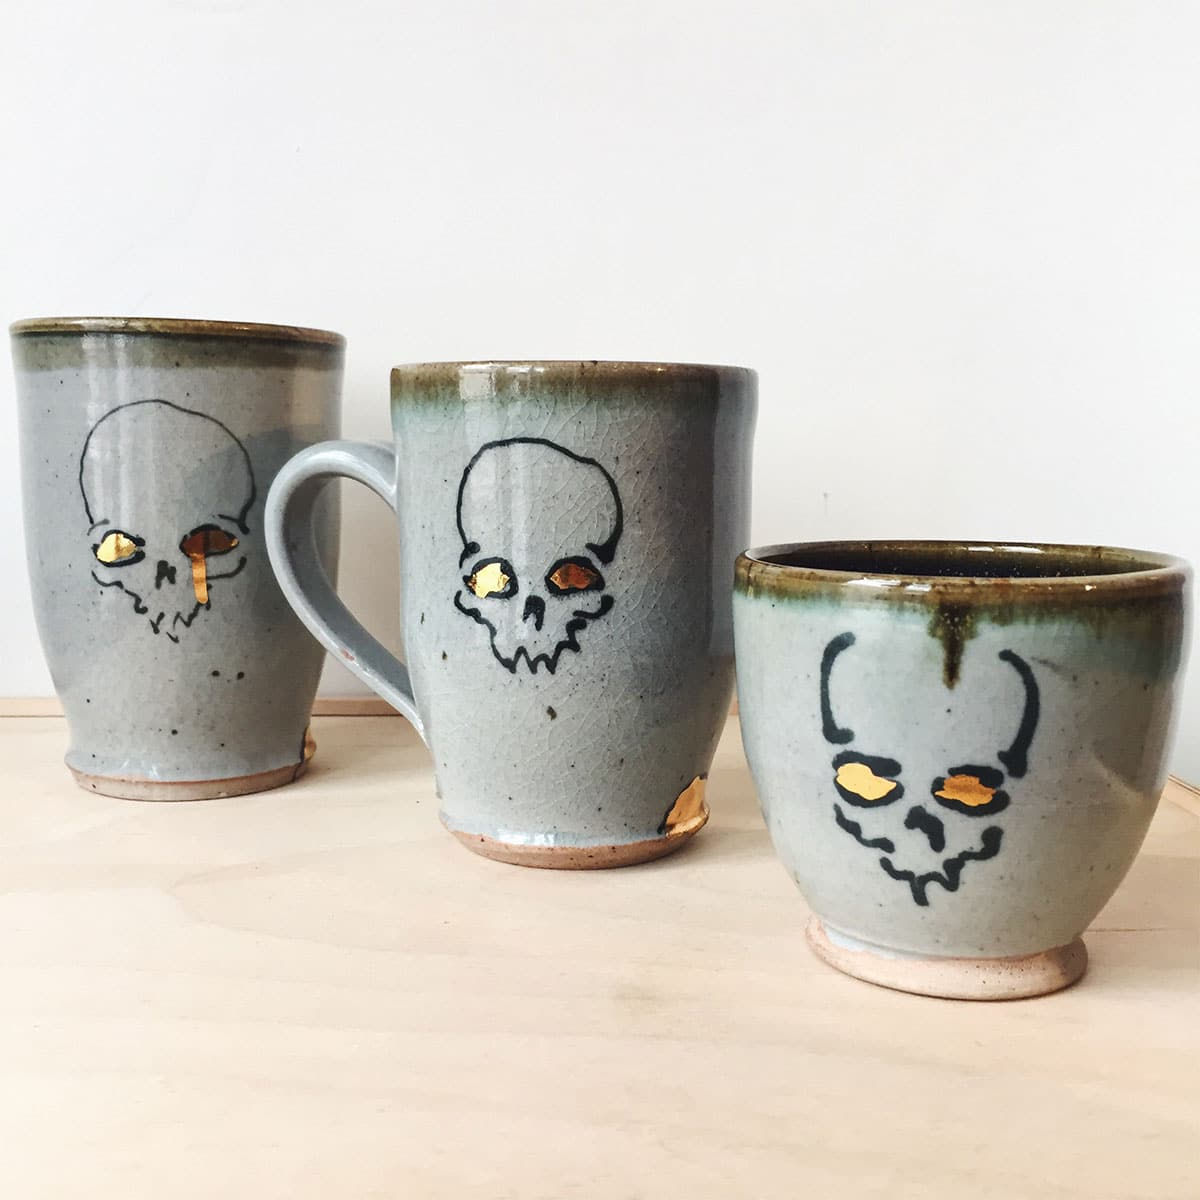 Skull mugs from local ceramicist Corey Jefferson at Homespun: Modern Handmade